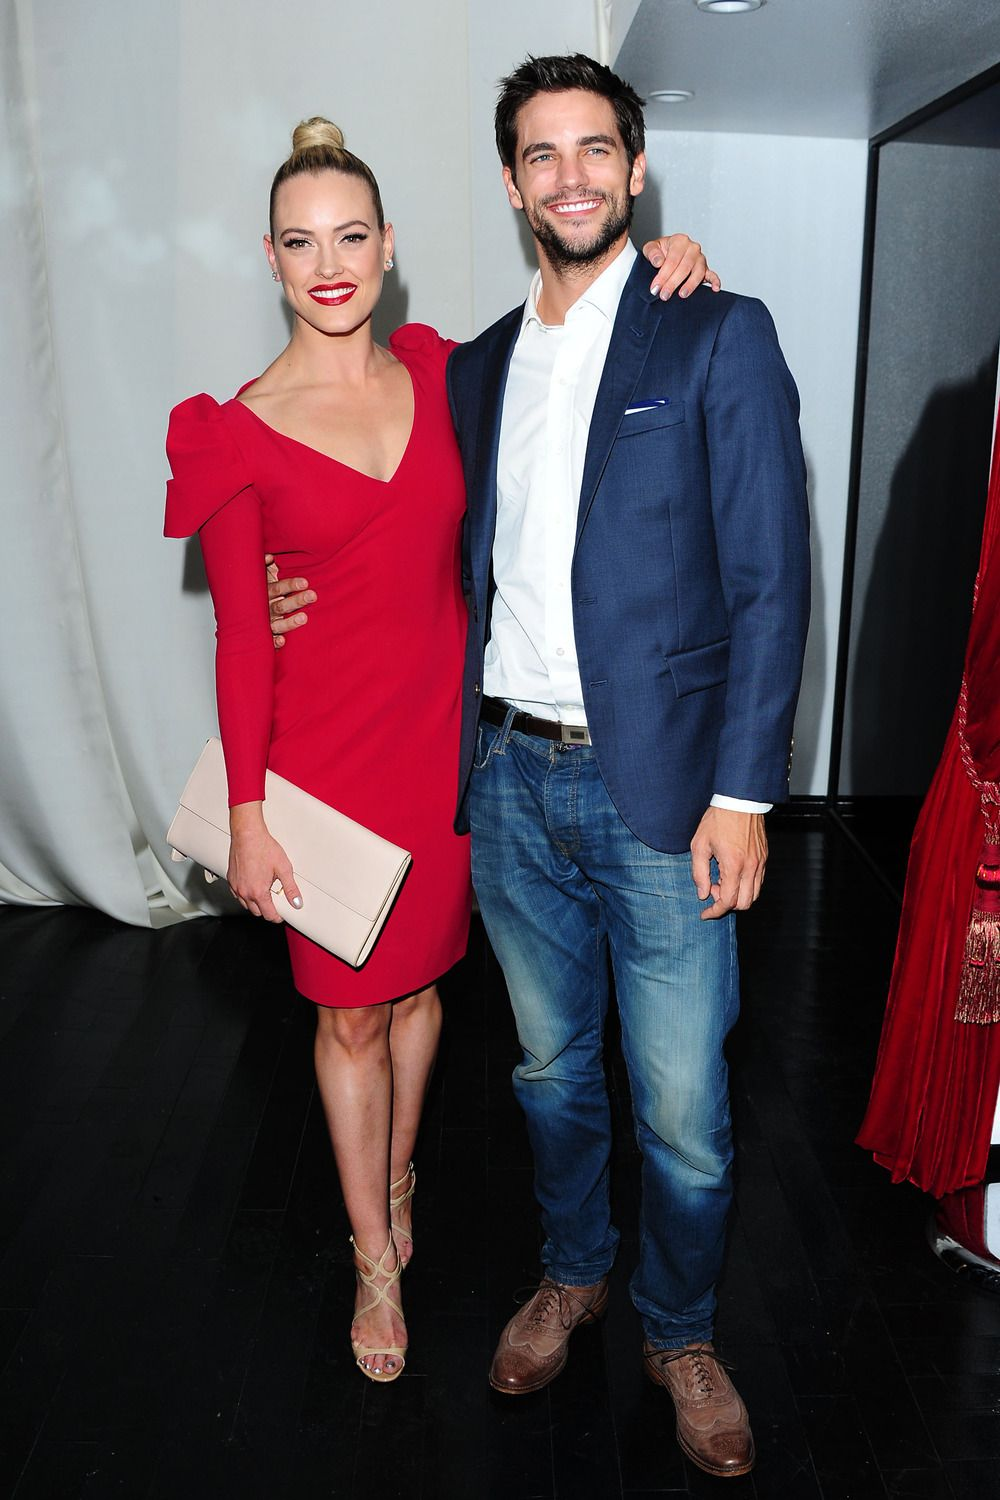 dwts brant and peta dating